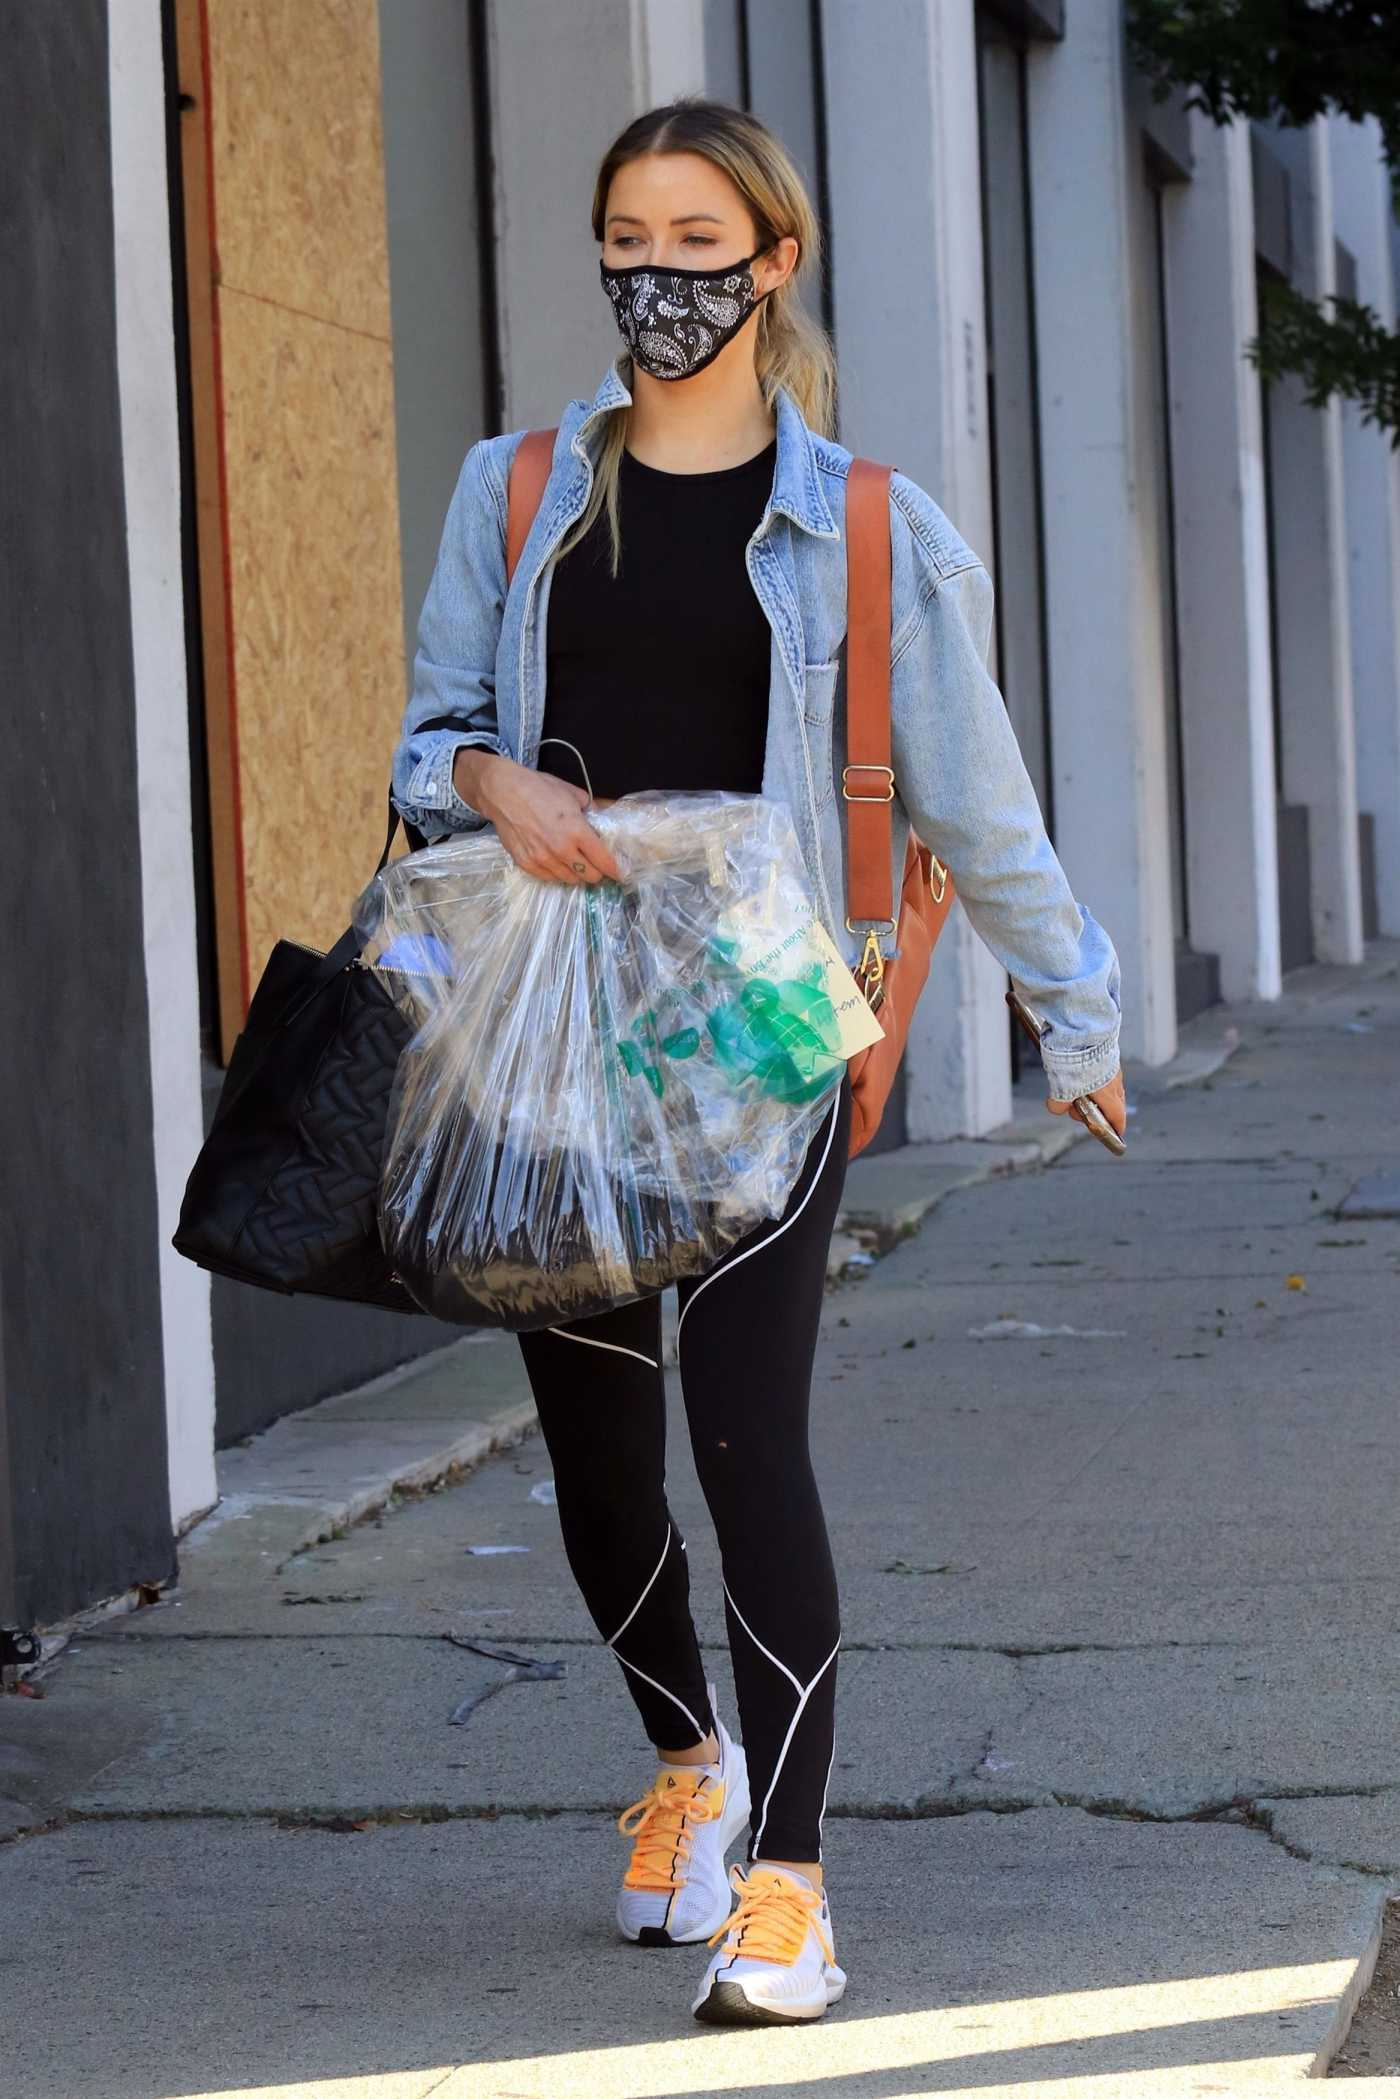 Kaitlyn Bristowe in a Blue Denim Jacket Leaves Her Dance Practice at the DWTS Studio in Los Angeles 11/12/2020